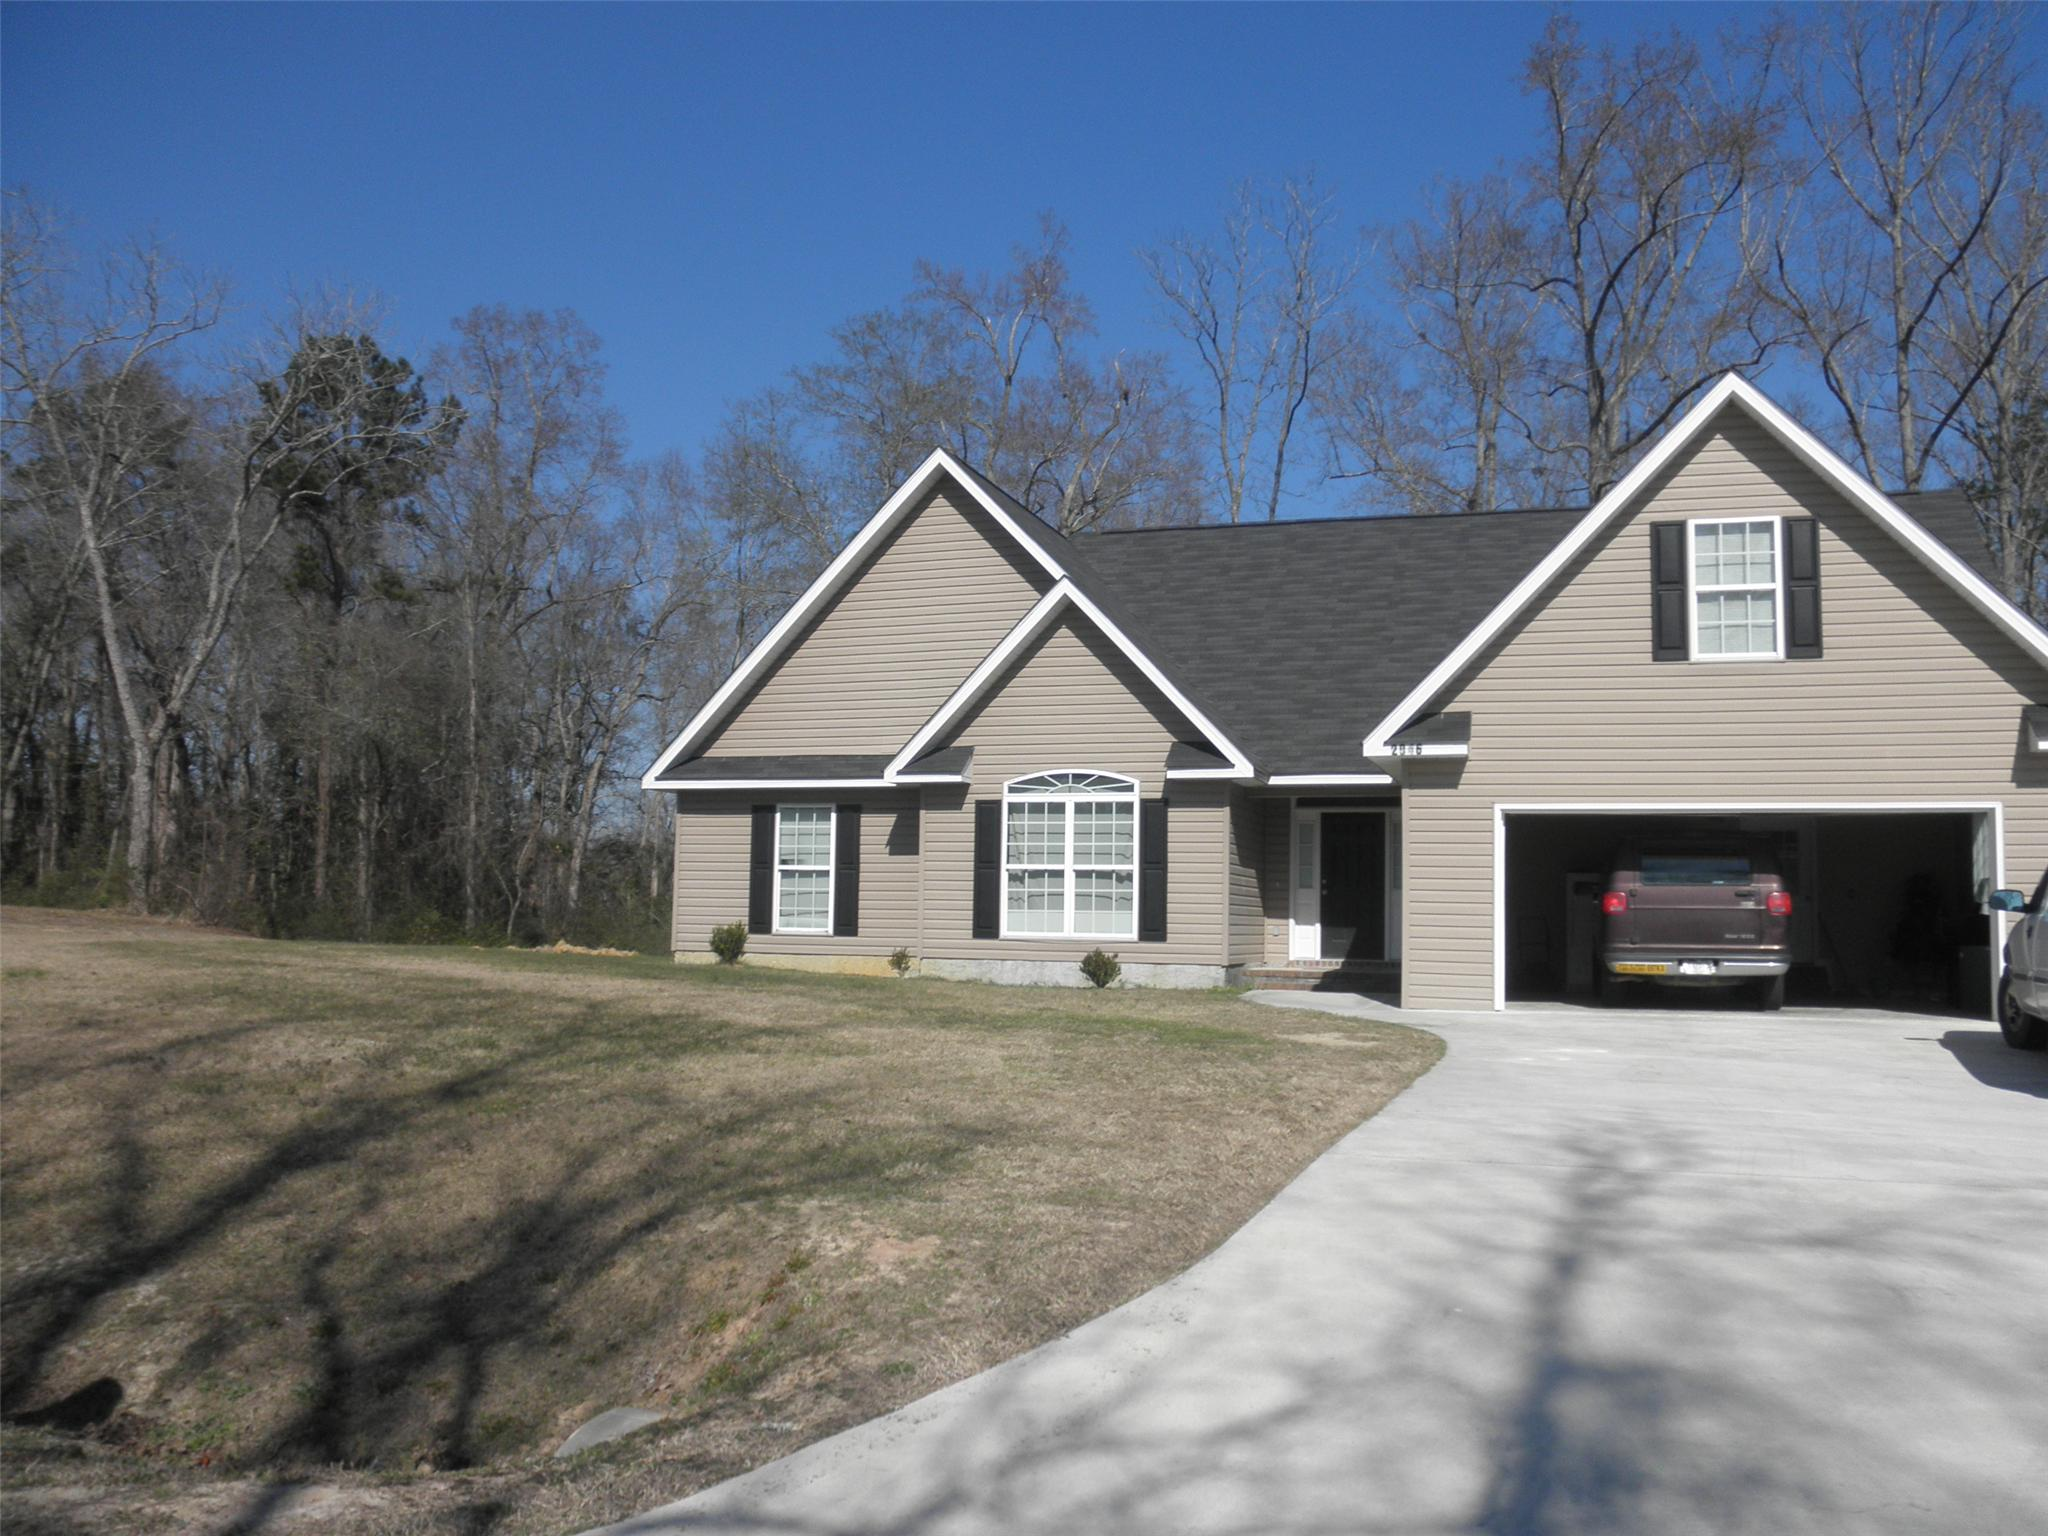 Photo of home for sale at 2046 Pinemount Blvd, Statesboro GA